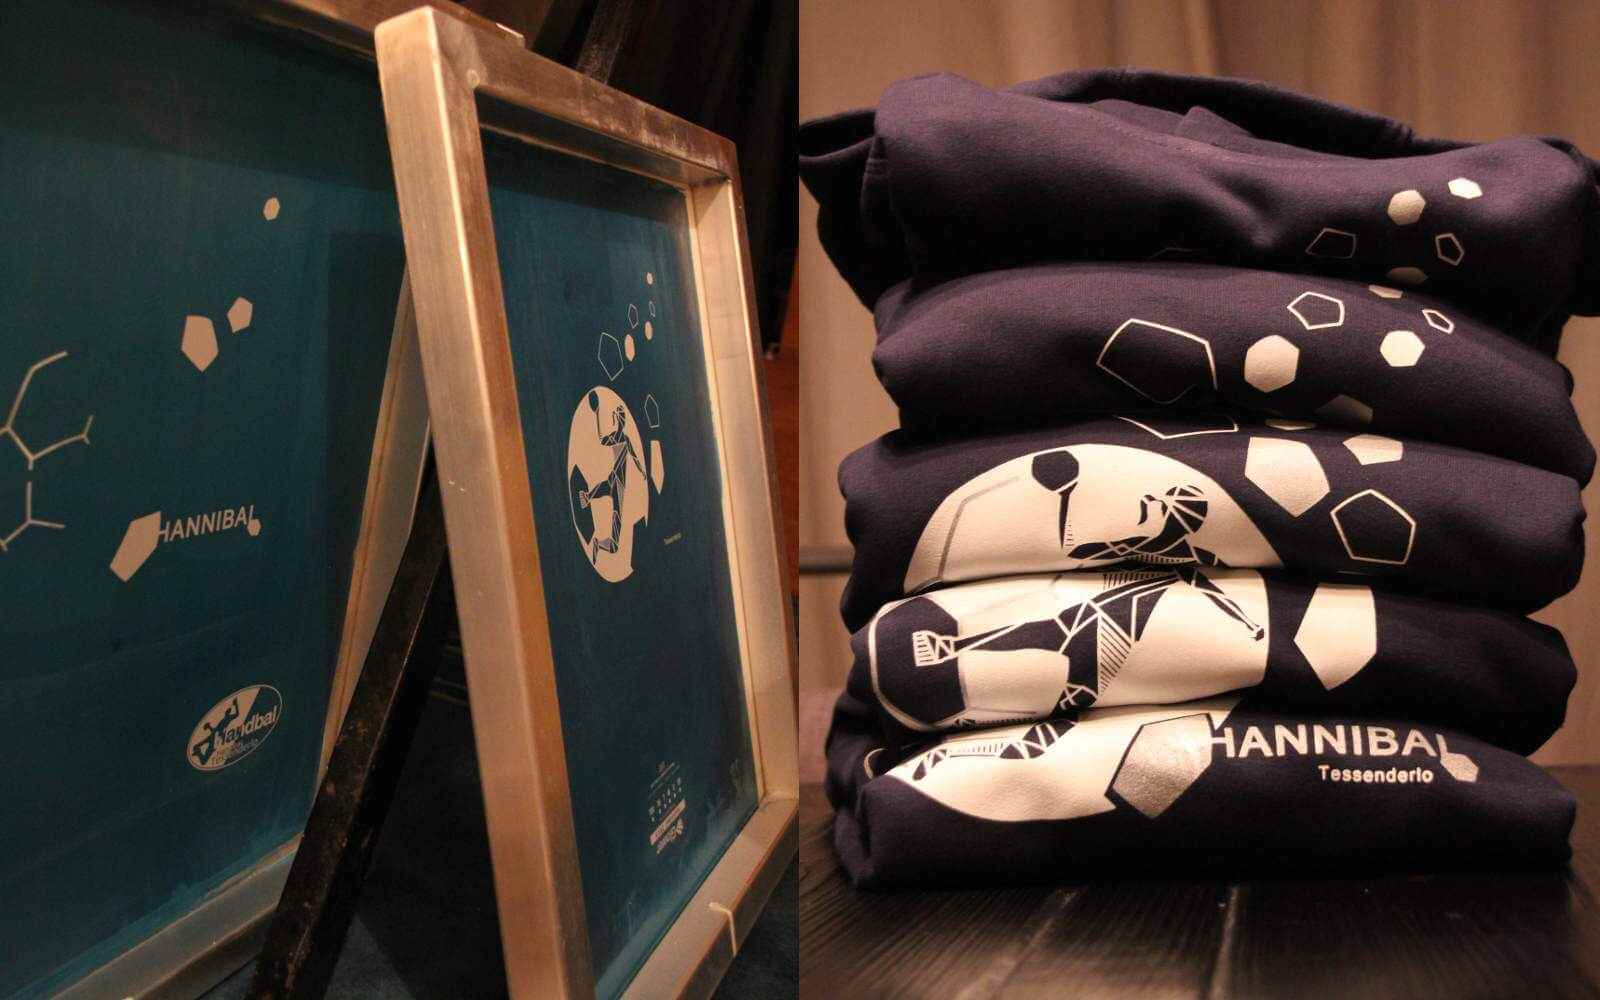 Hand printed hoodies handball with screens